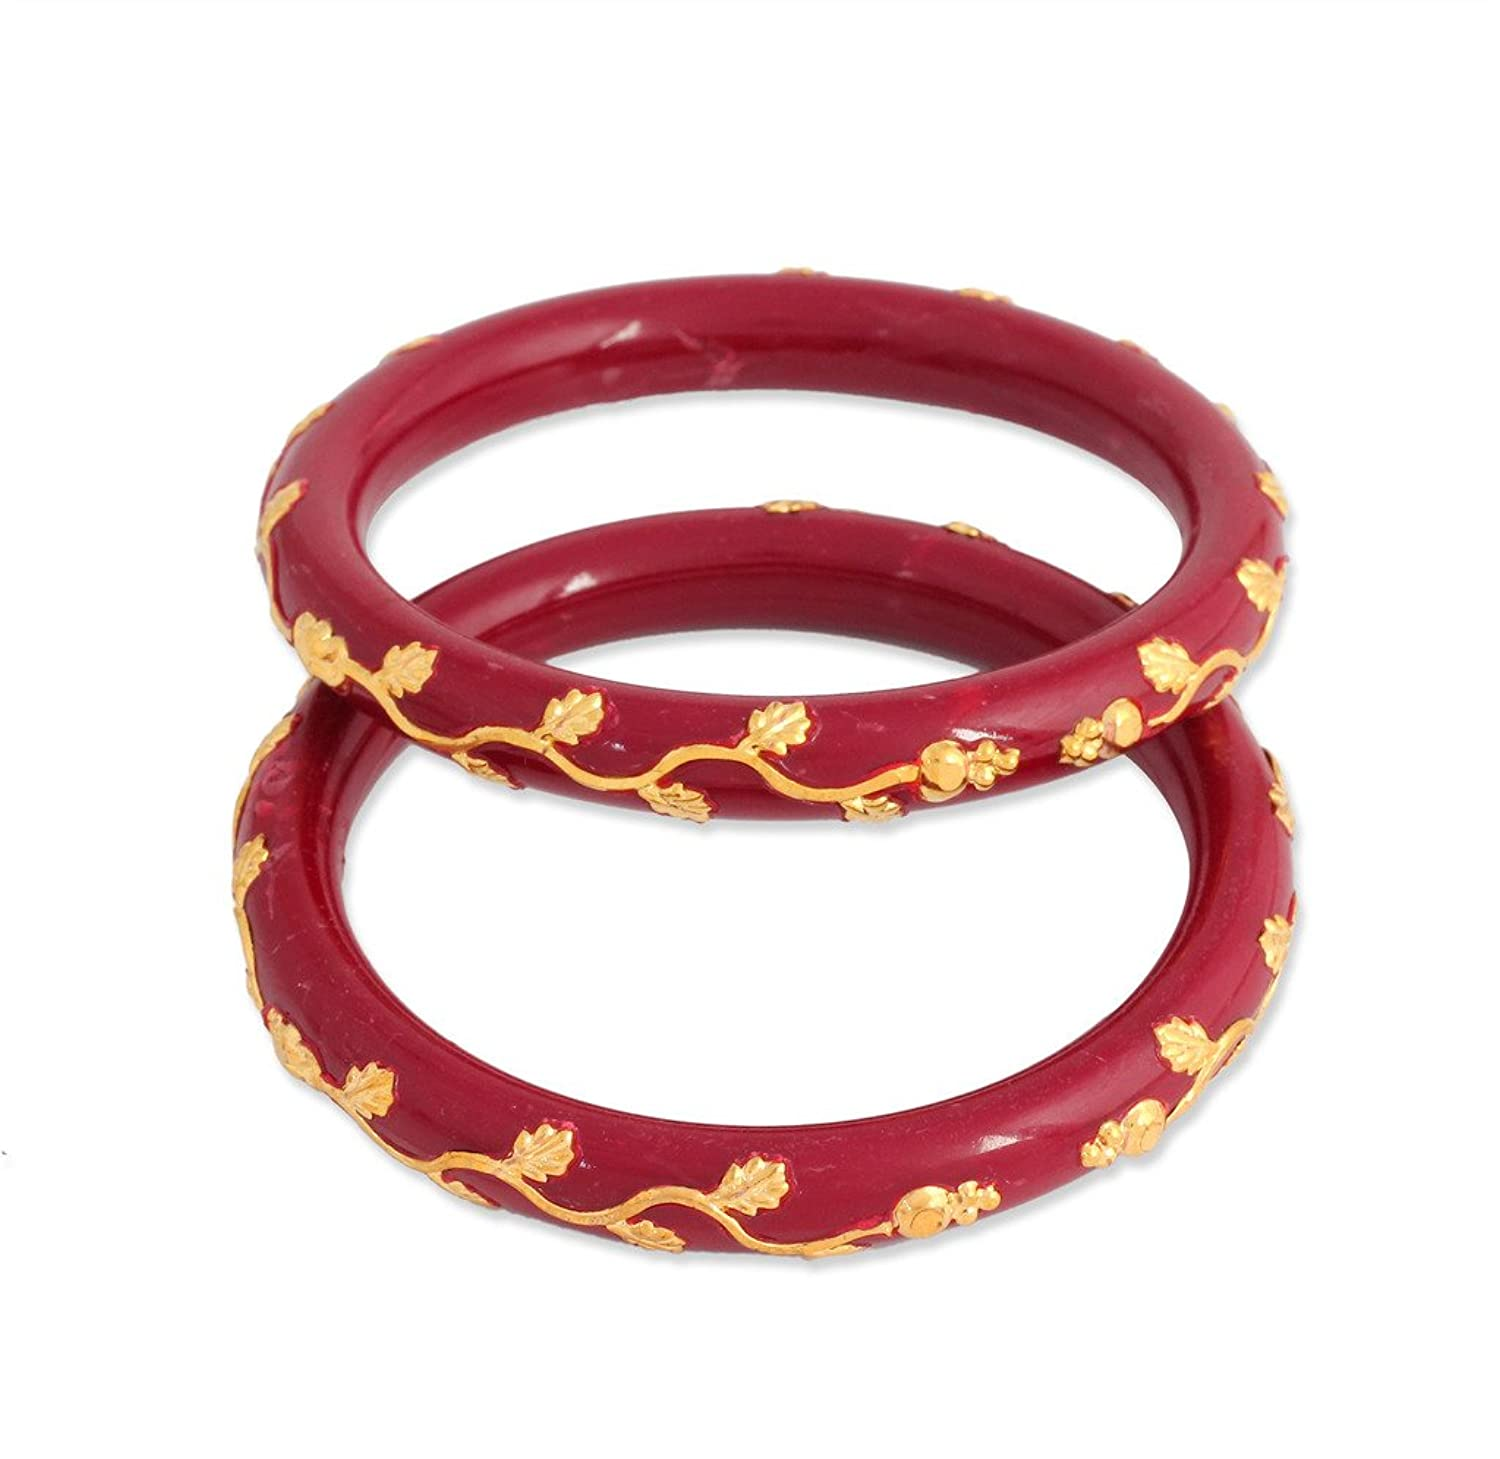 at bangles on acrylic com low winsant prices in only product buy for women tusker izptp izapo pink india thumb